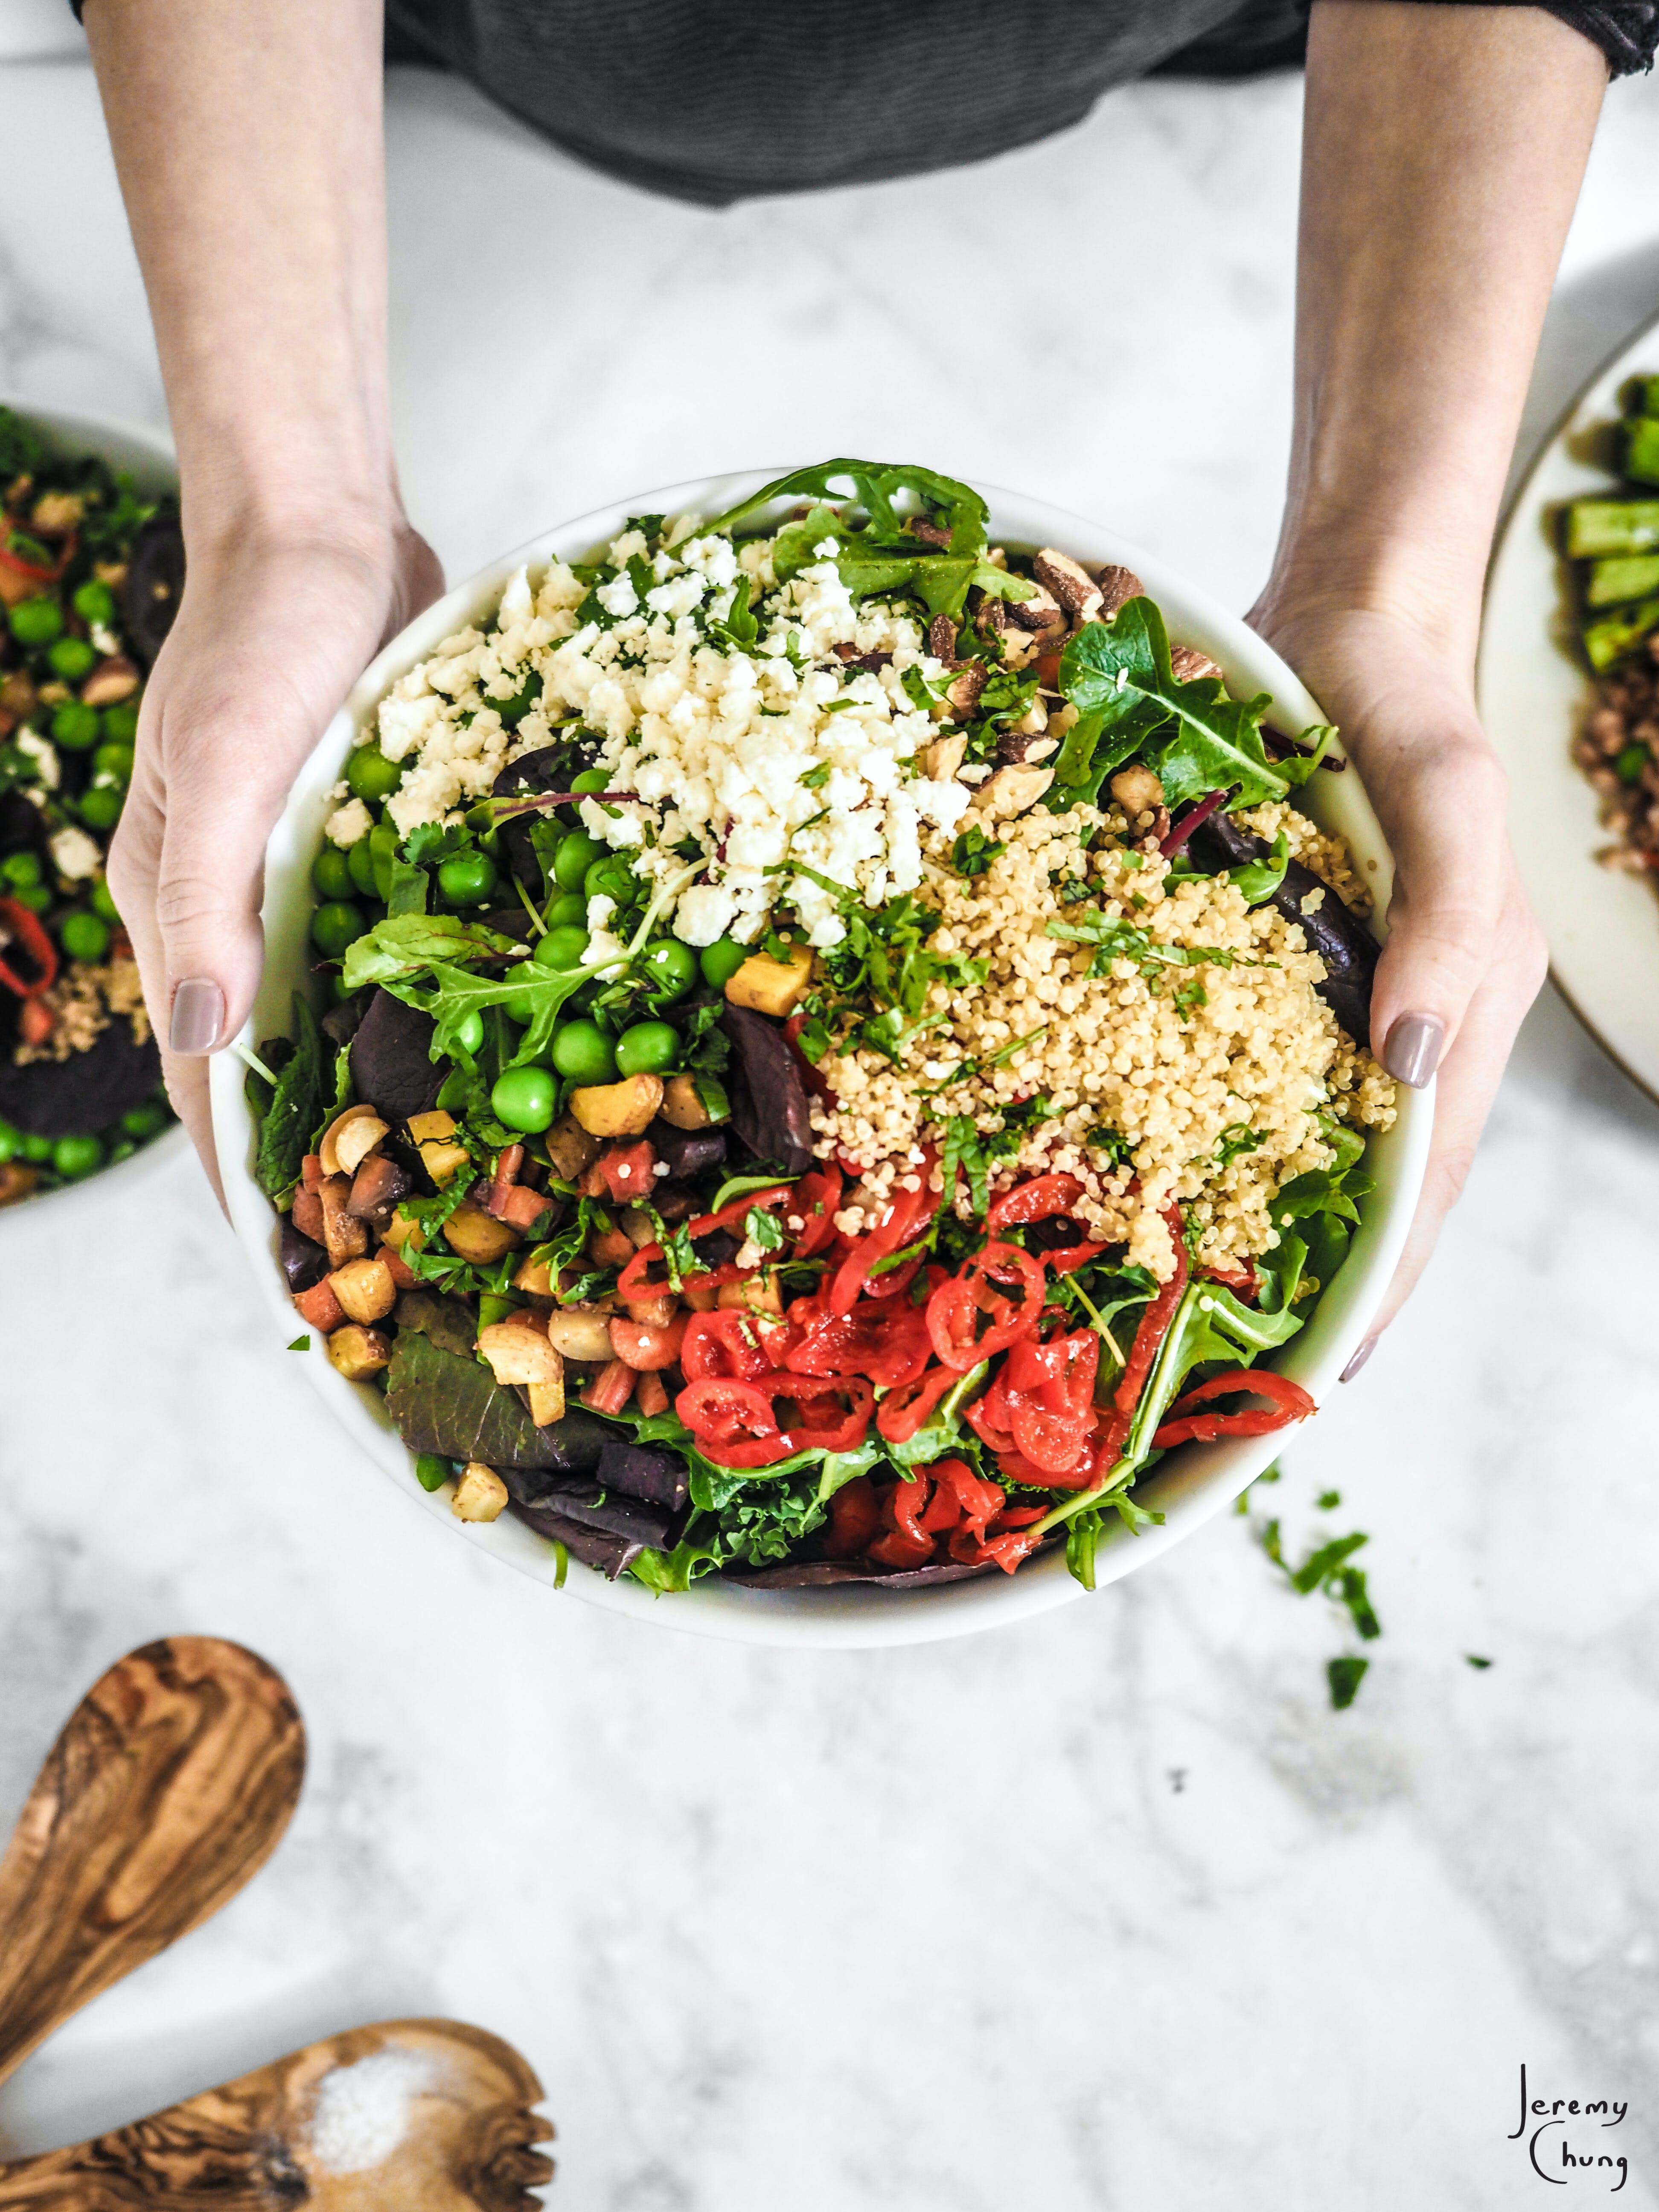 Free stock photo of food photography, healthy eating, lunch, salad